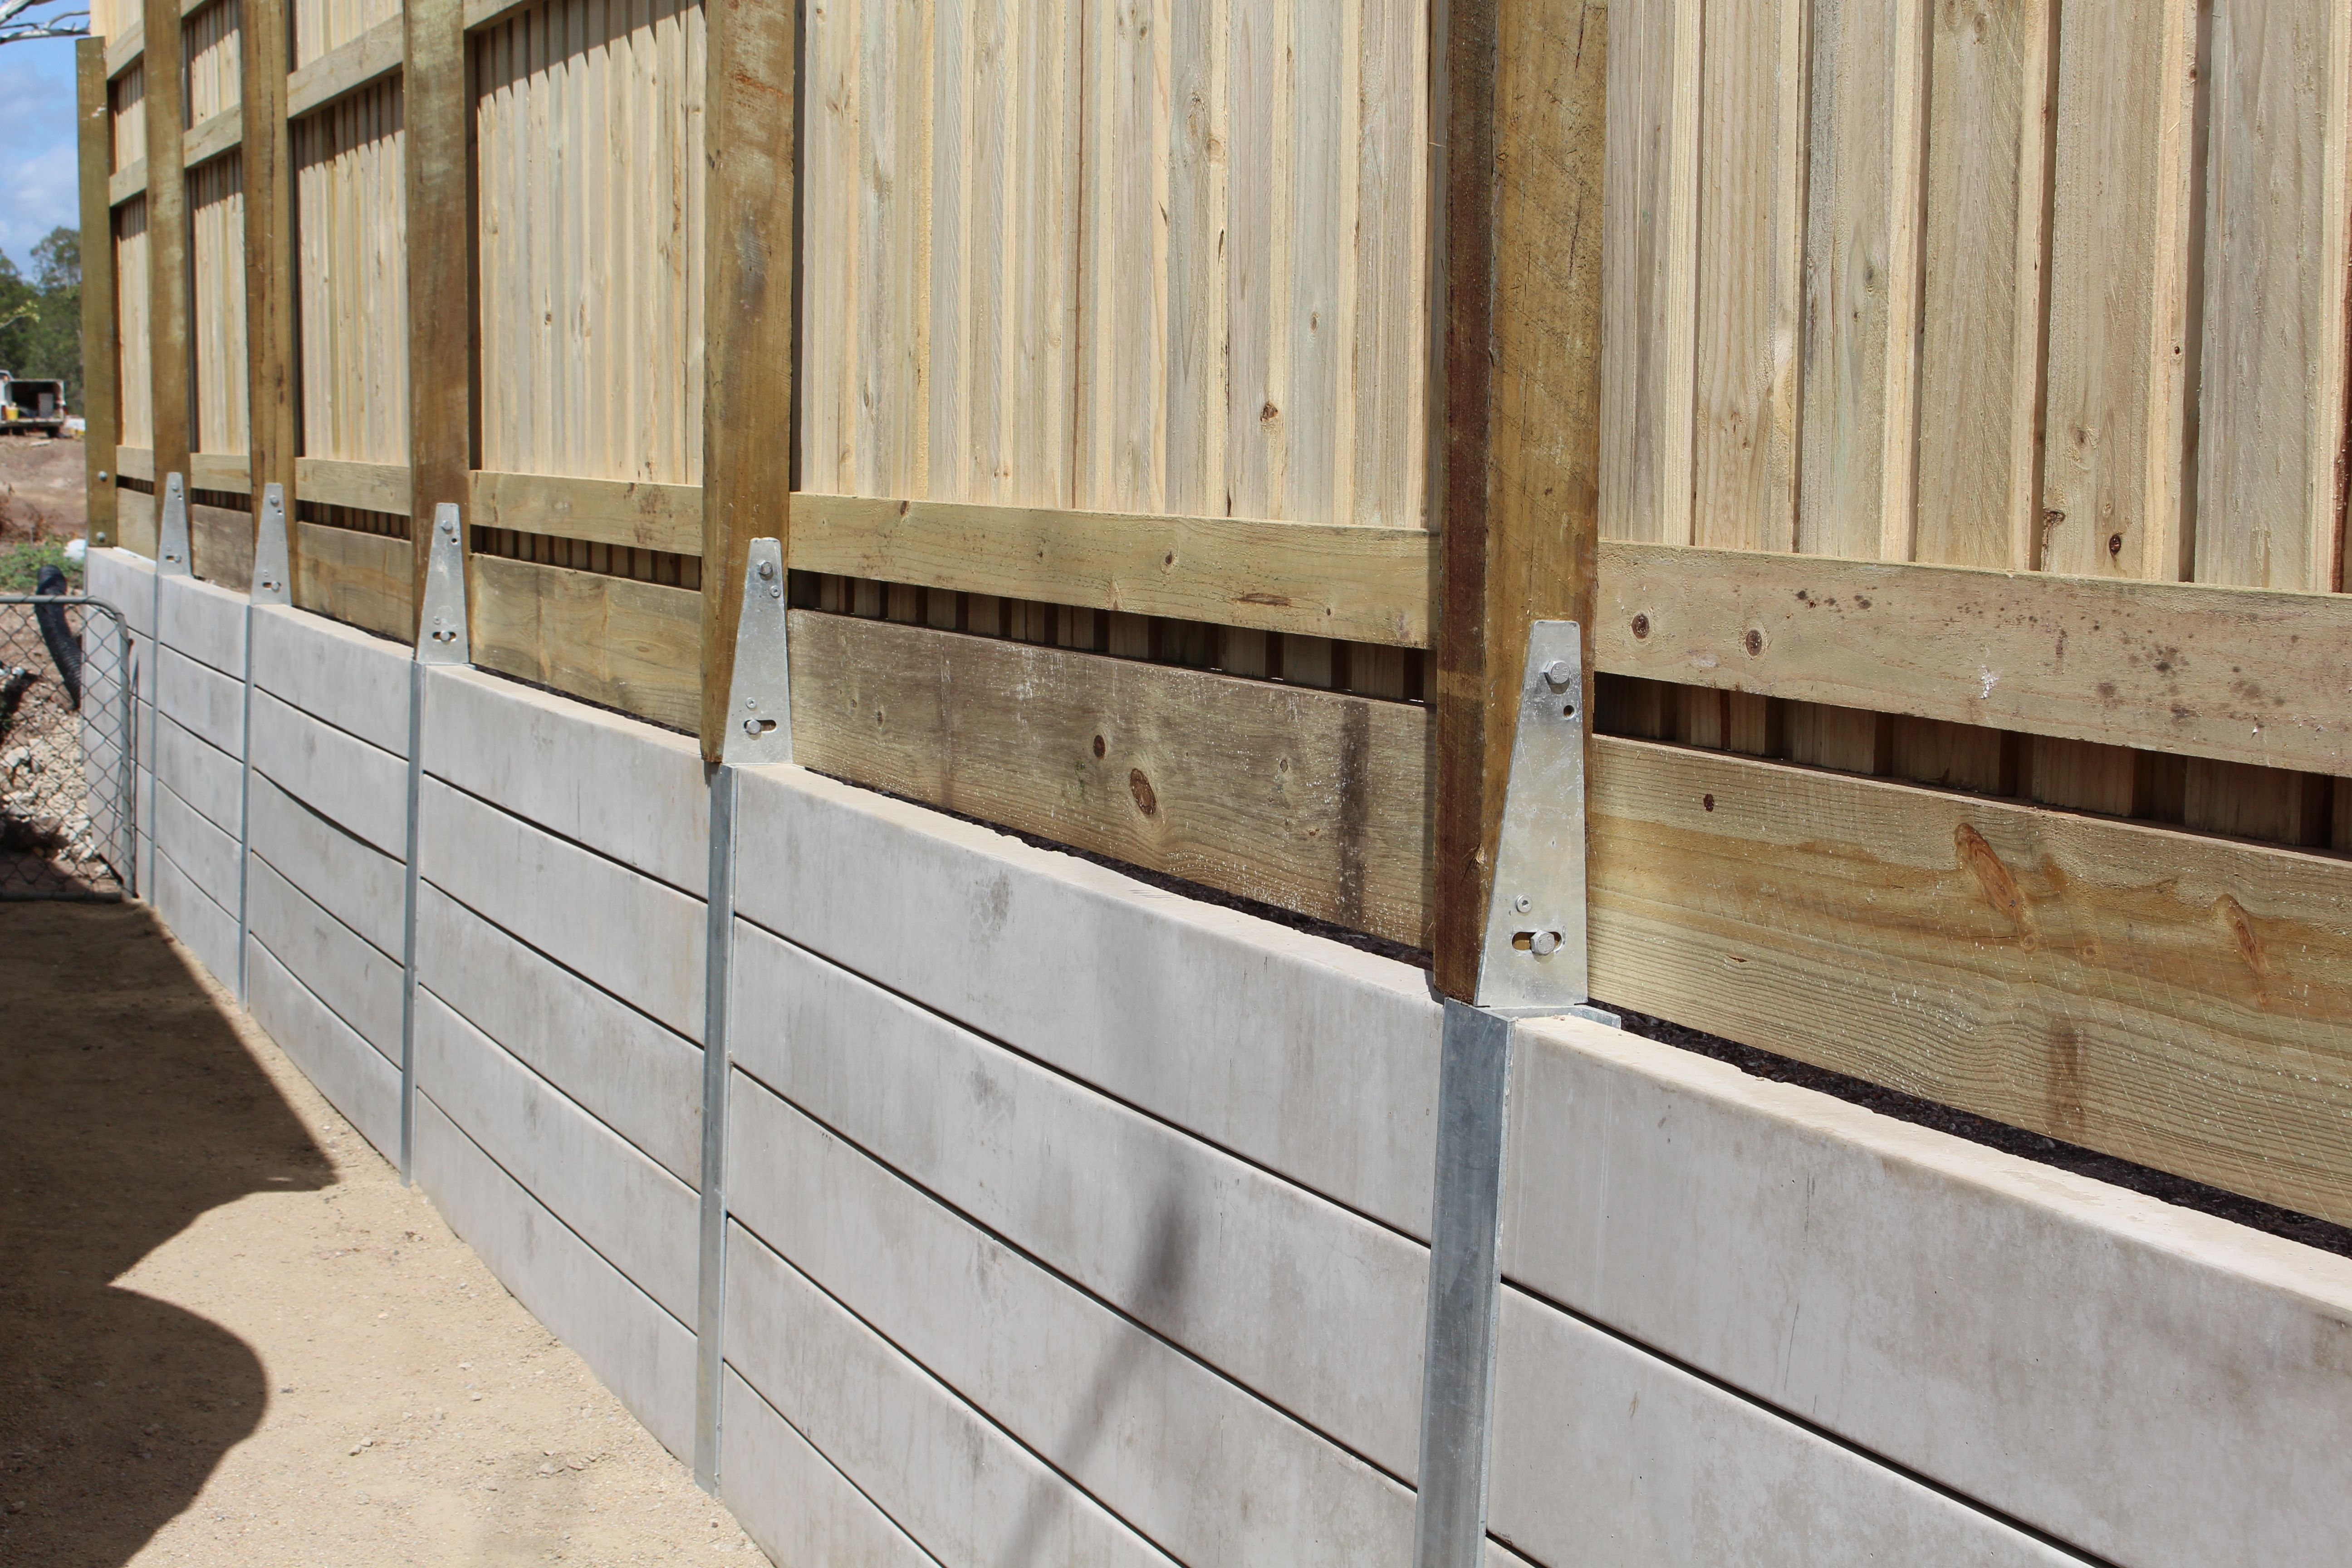 Pioneer Smooth Grey Concrete Sleeper Retaining Wall With A Timber Fence Attached Using Our Fence Brac Front Yard Fence Backyard Fences Concrete Retaining Walls